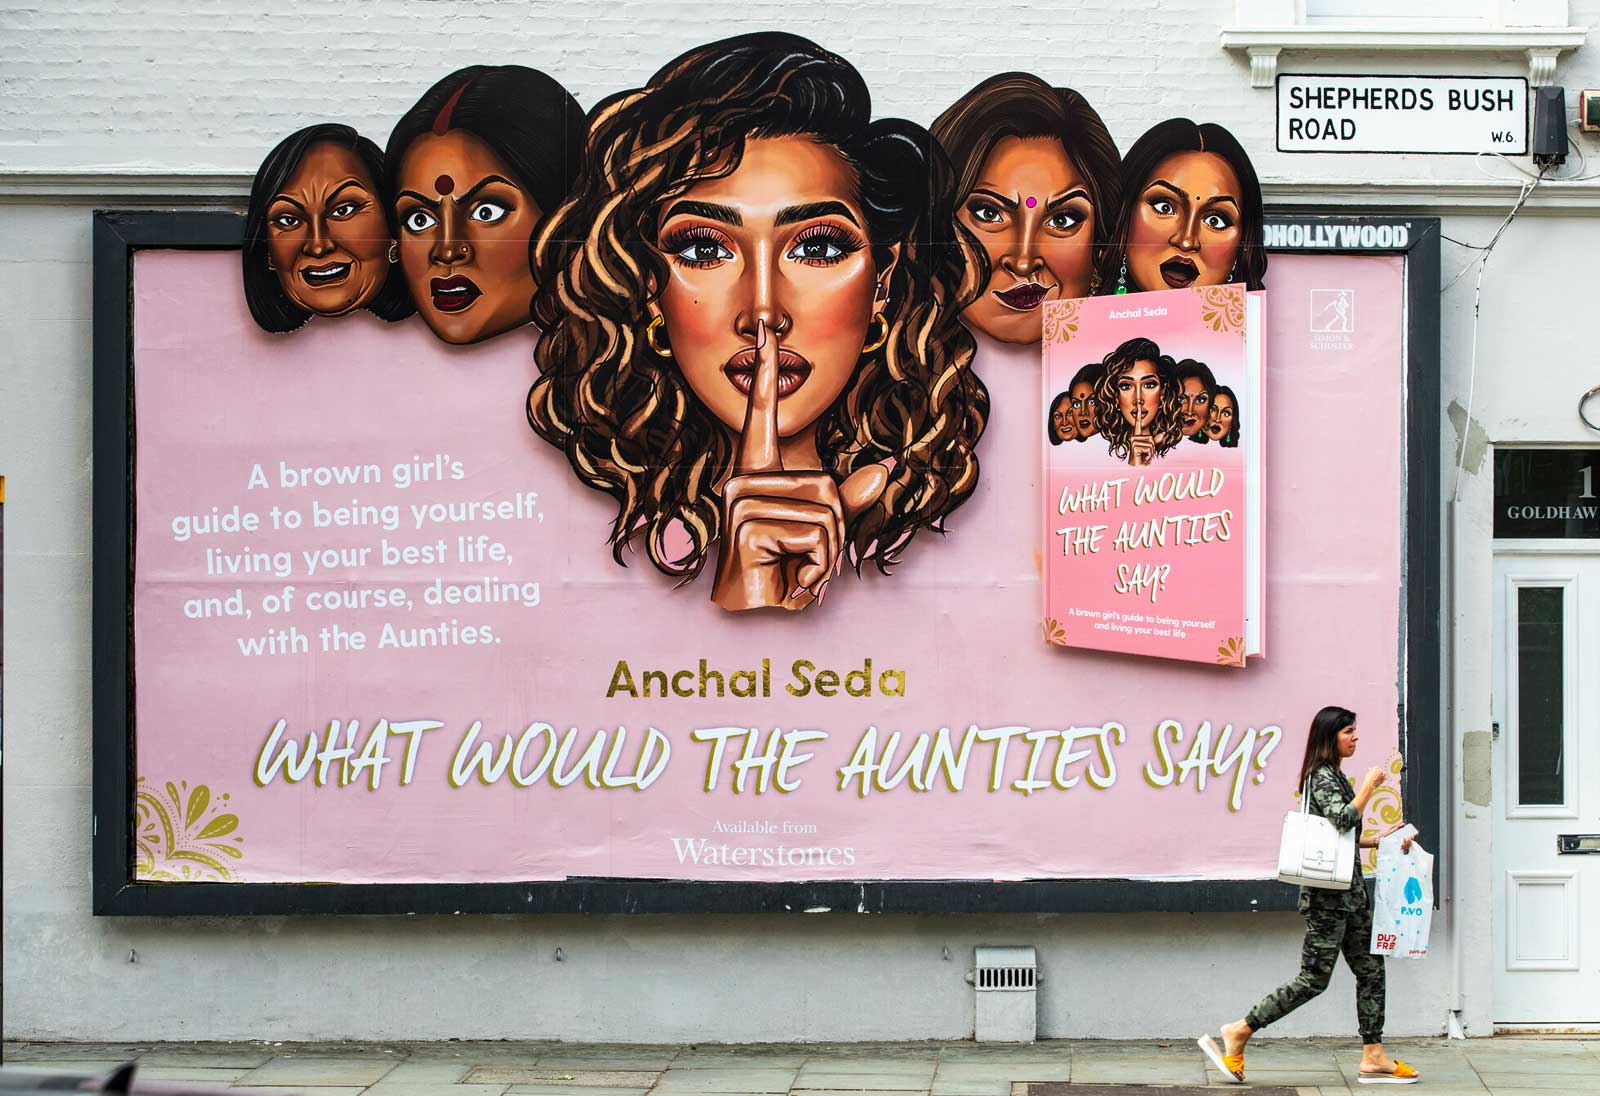 What Would the Aunties Say?: Anchal Seda